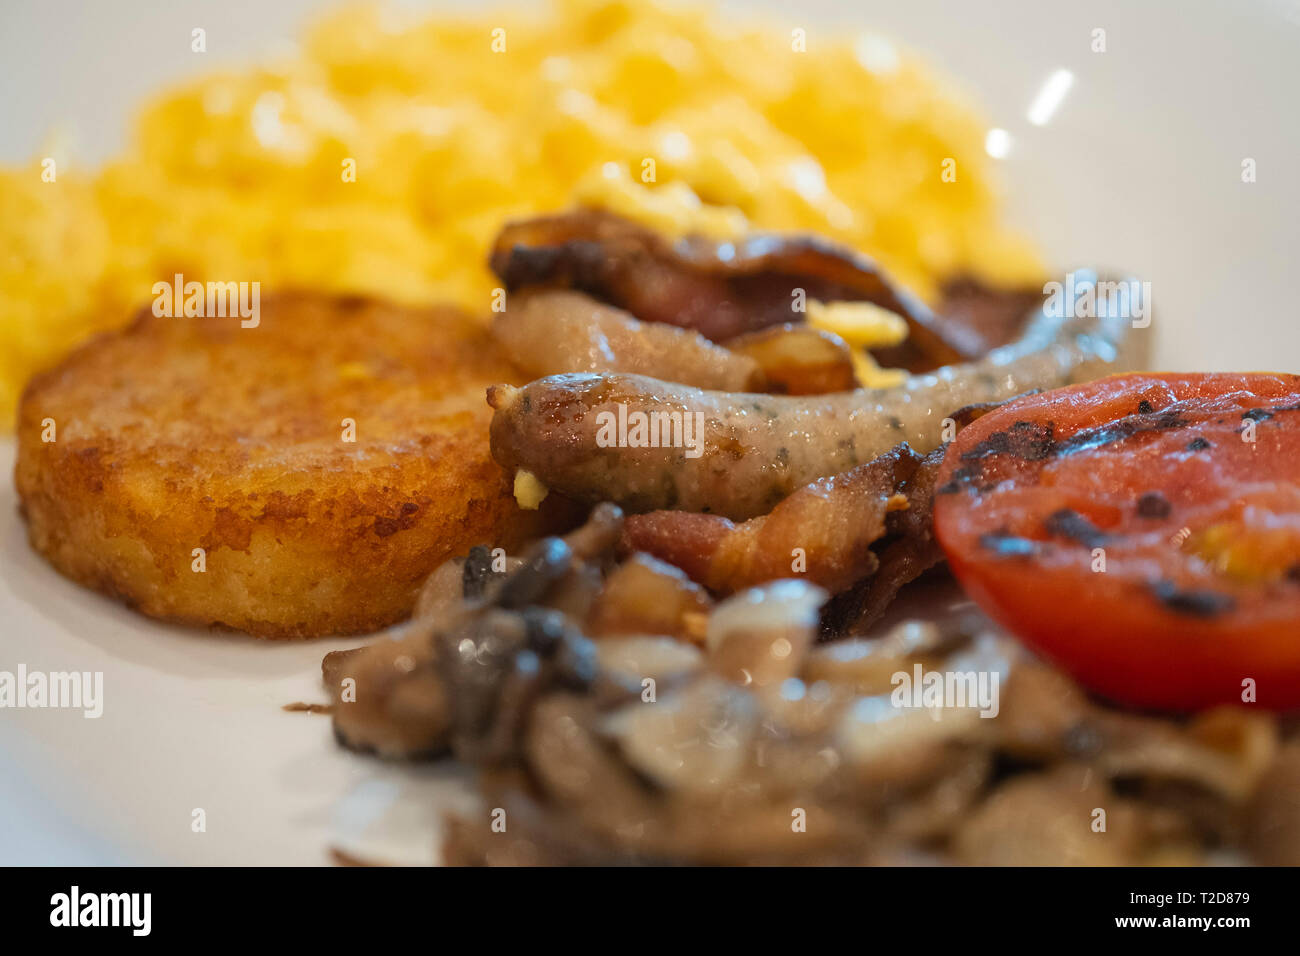 Breakfast plate with scrambled eggs, sausages, tomatoes and hash browns Stock Photo